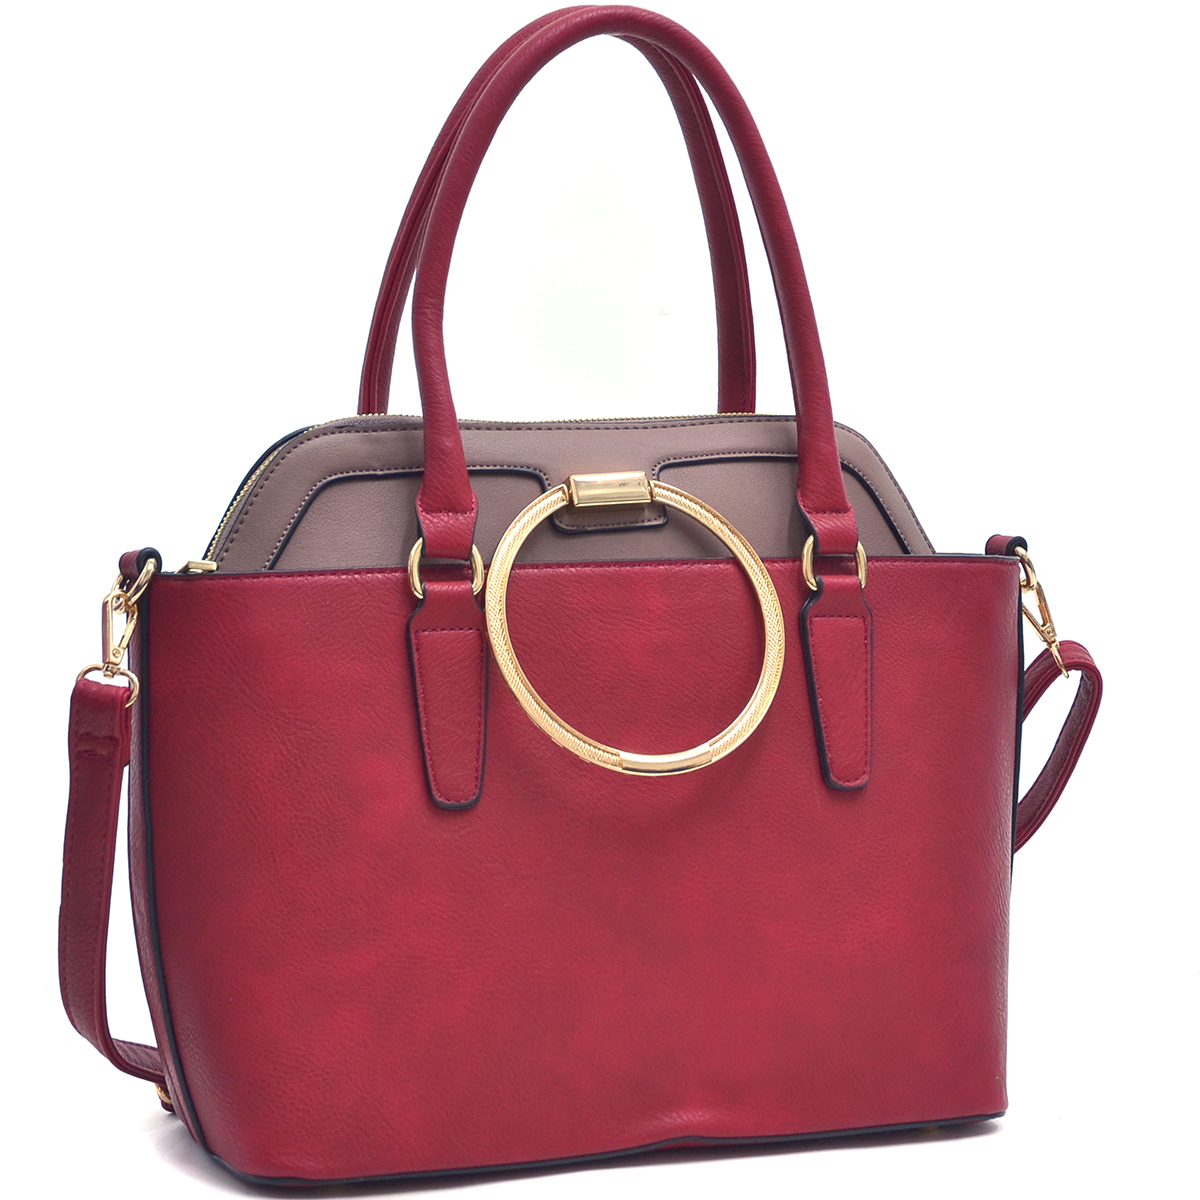 Dasein 2 in 1 Faux Leather Bag. Combination of Satchel and Tote